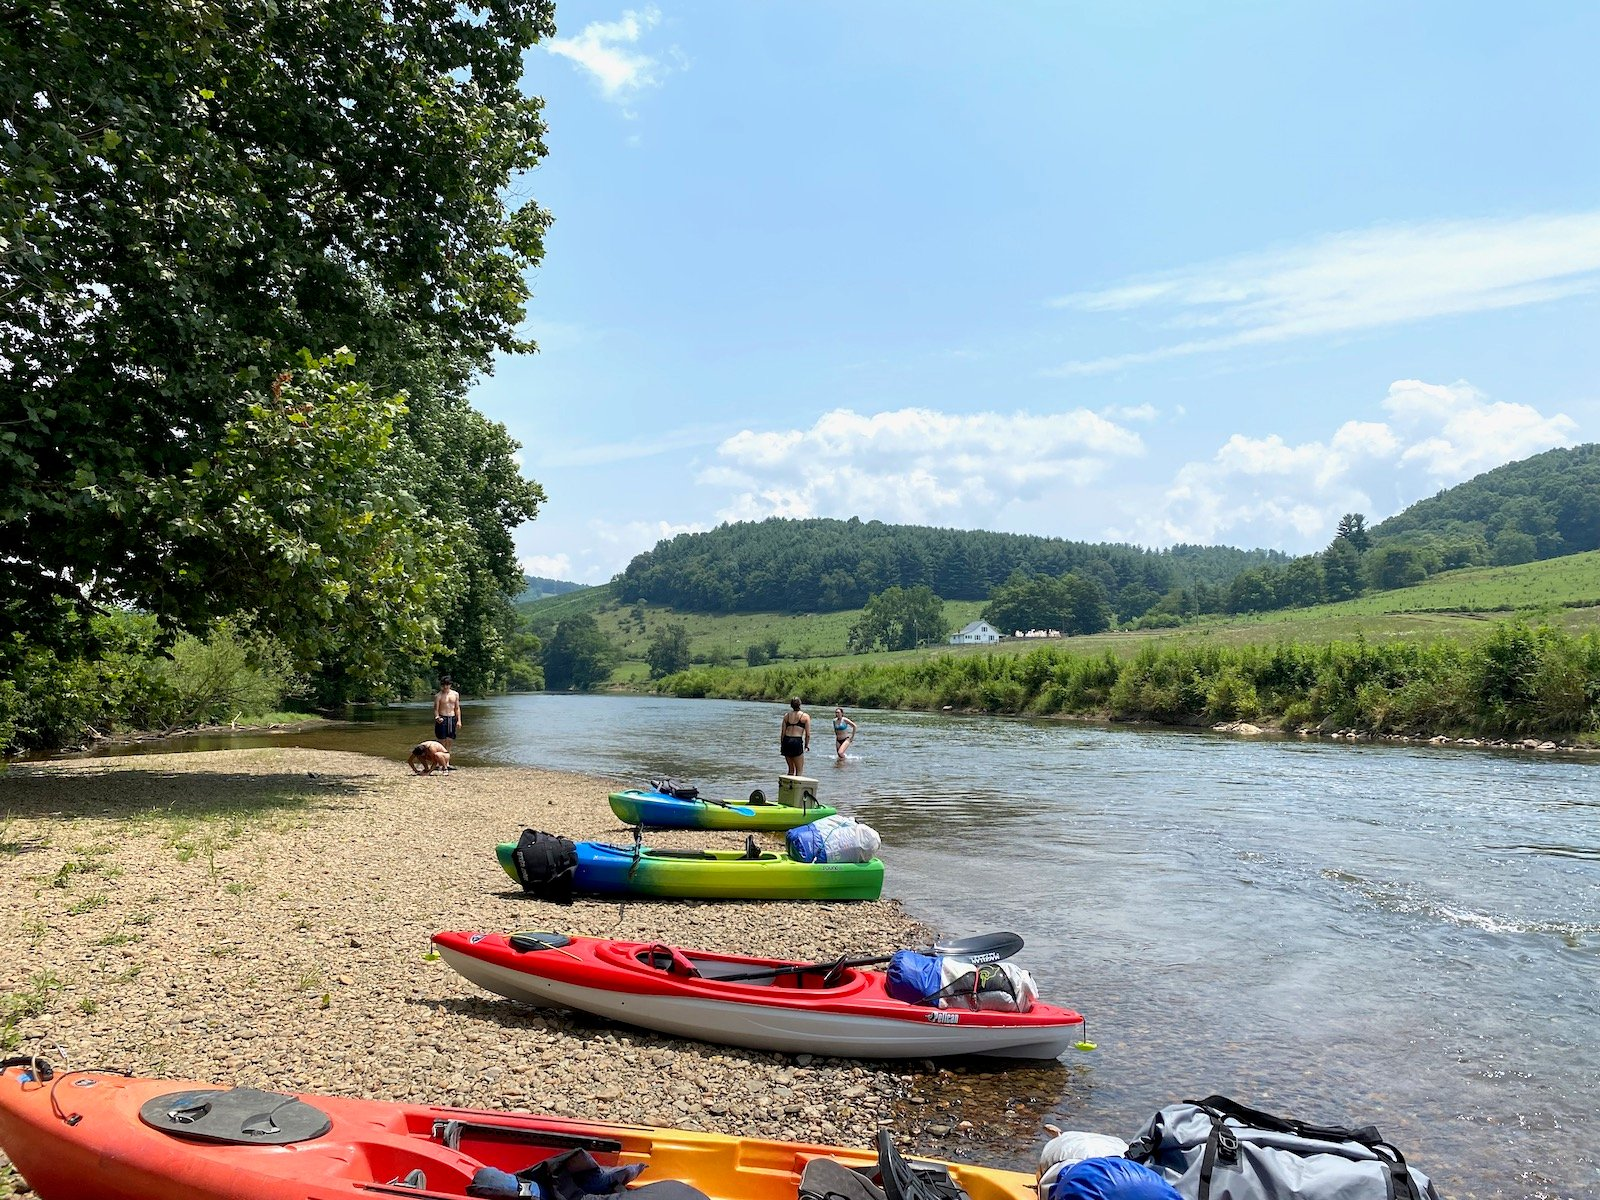 Four kayaks lined up on the banks of the river in North Carolina.